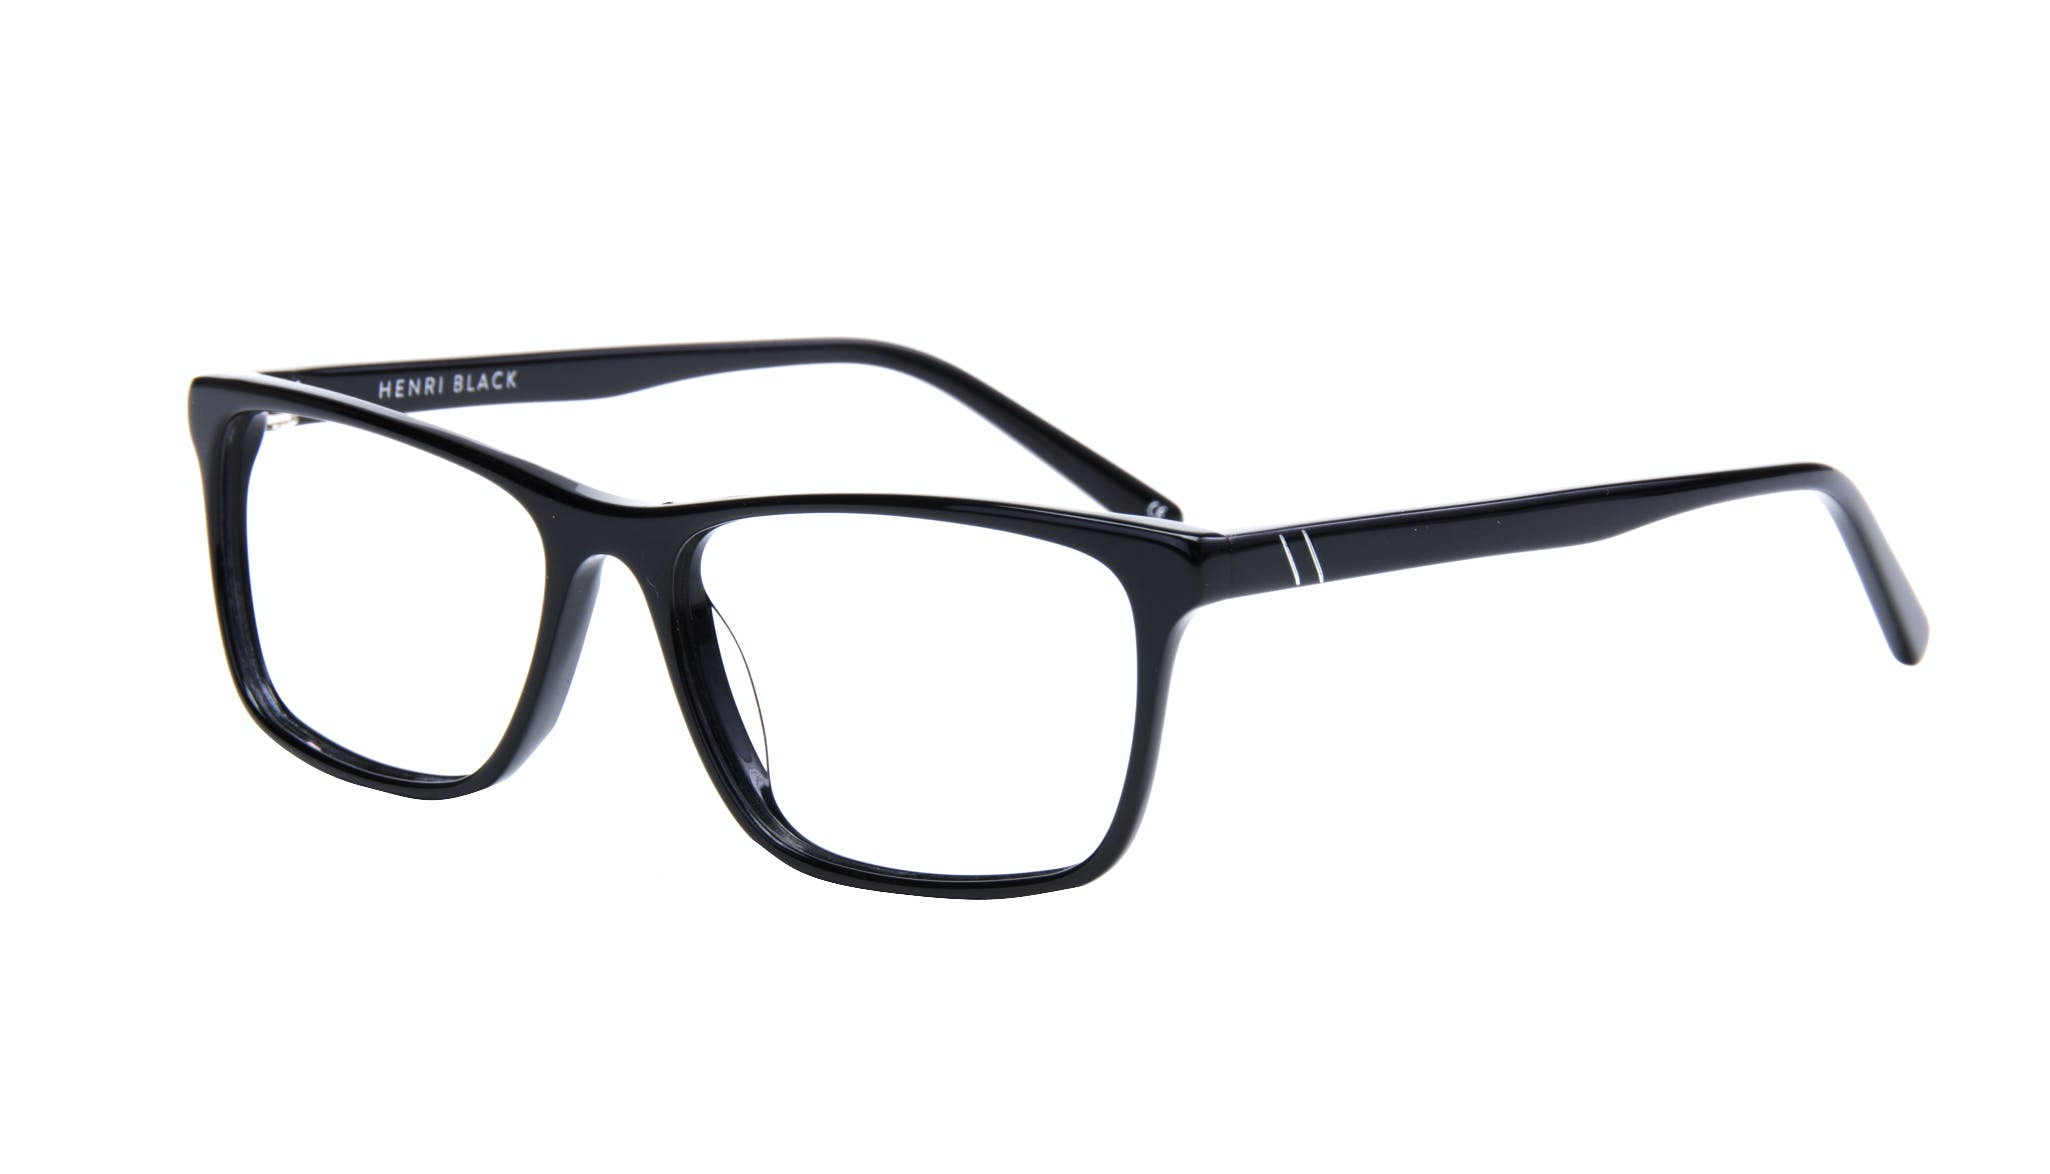 Affordable Fashion Glasses Rectangle Eyeglasses Men Henri Black  Tilt